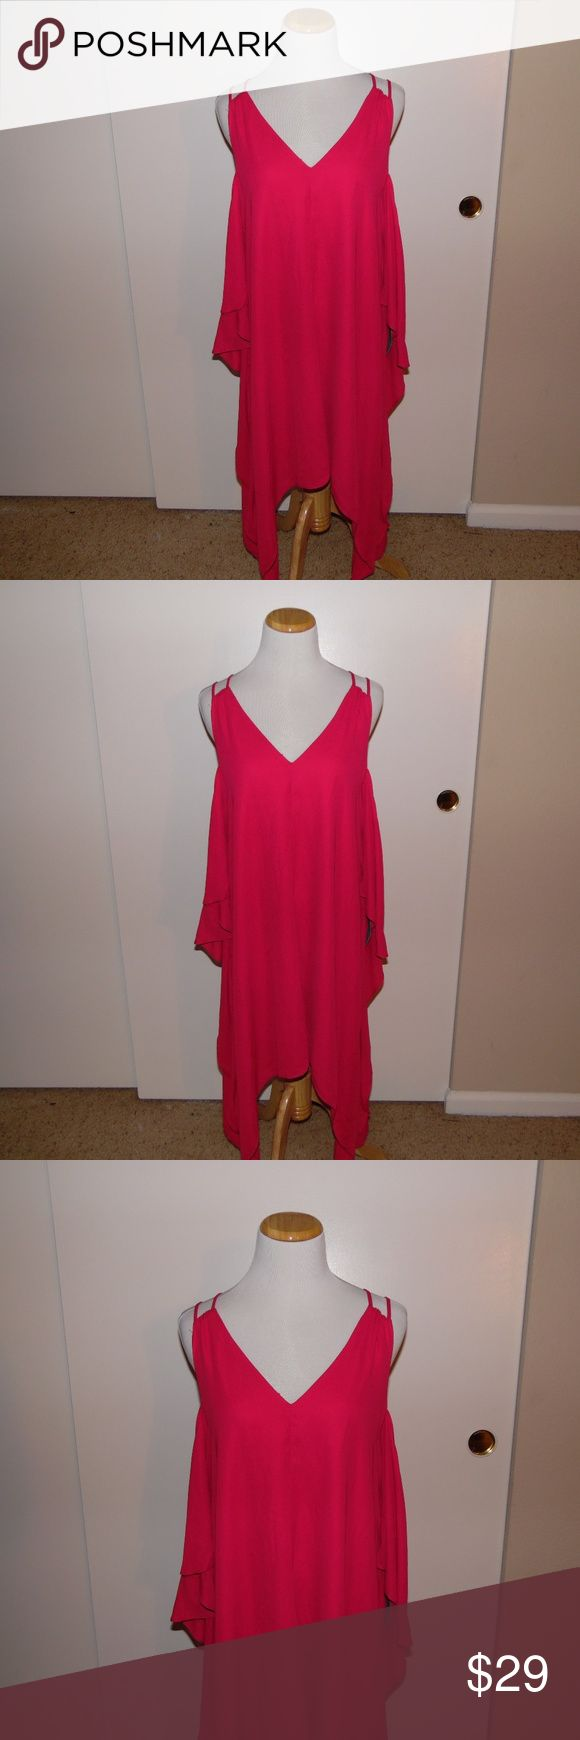 Adelyn Rae Fiona Cold Shoulder Shift Dress Brand New with Tags Adelyn Rae Fiona Cold Shoulder Shift Dress in the color Cerise. Material is 100% Polyester and is fully lined. Beautiful pink dress that can be dressed up or down for any occasion. Adelyn Rae Dresses